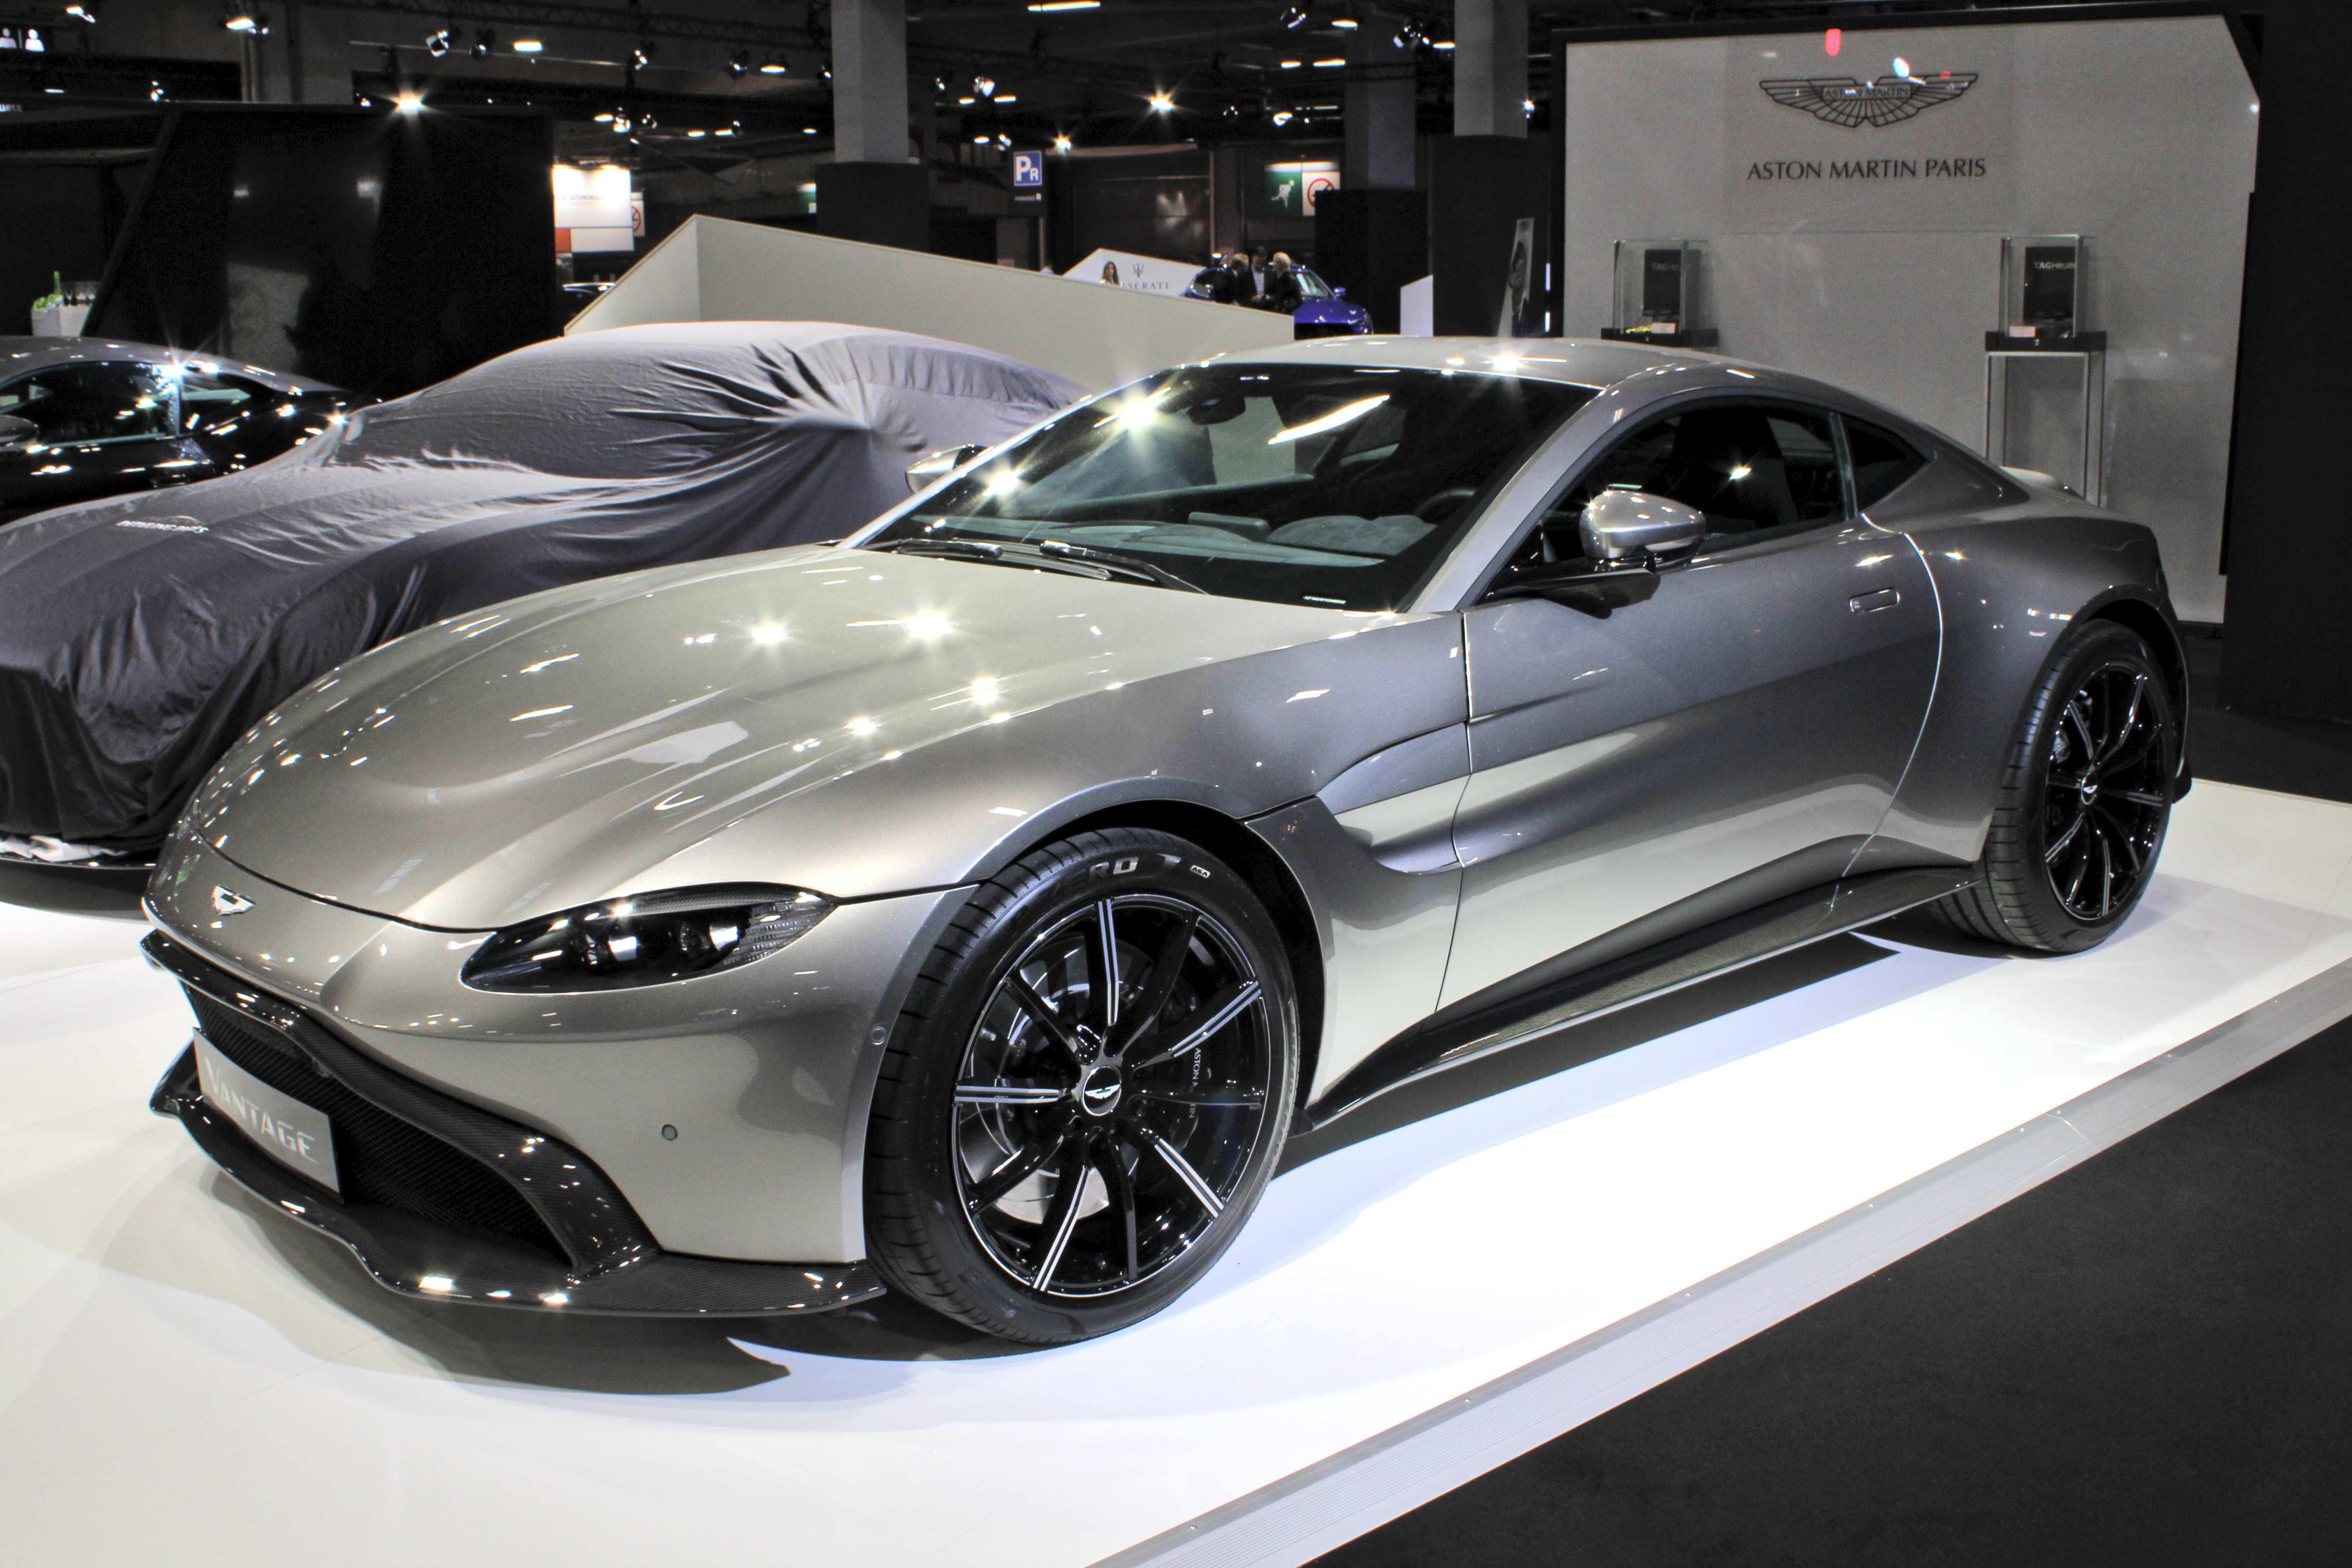 38 Concept of 2019 Aston Martin Vantage Predictably Stunning Reviews for 2019 Aston Martin Vantage Predictably Stunning